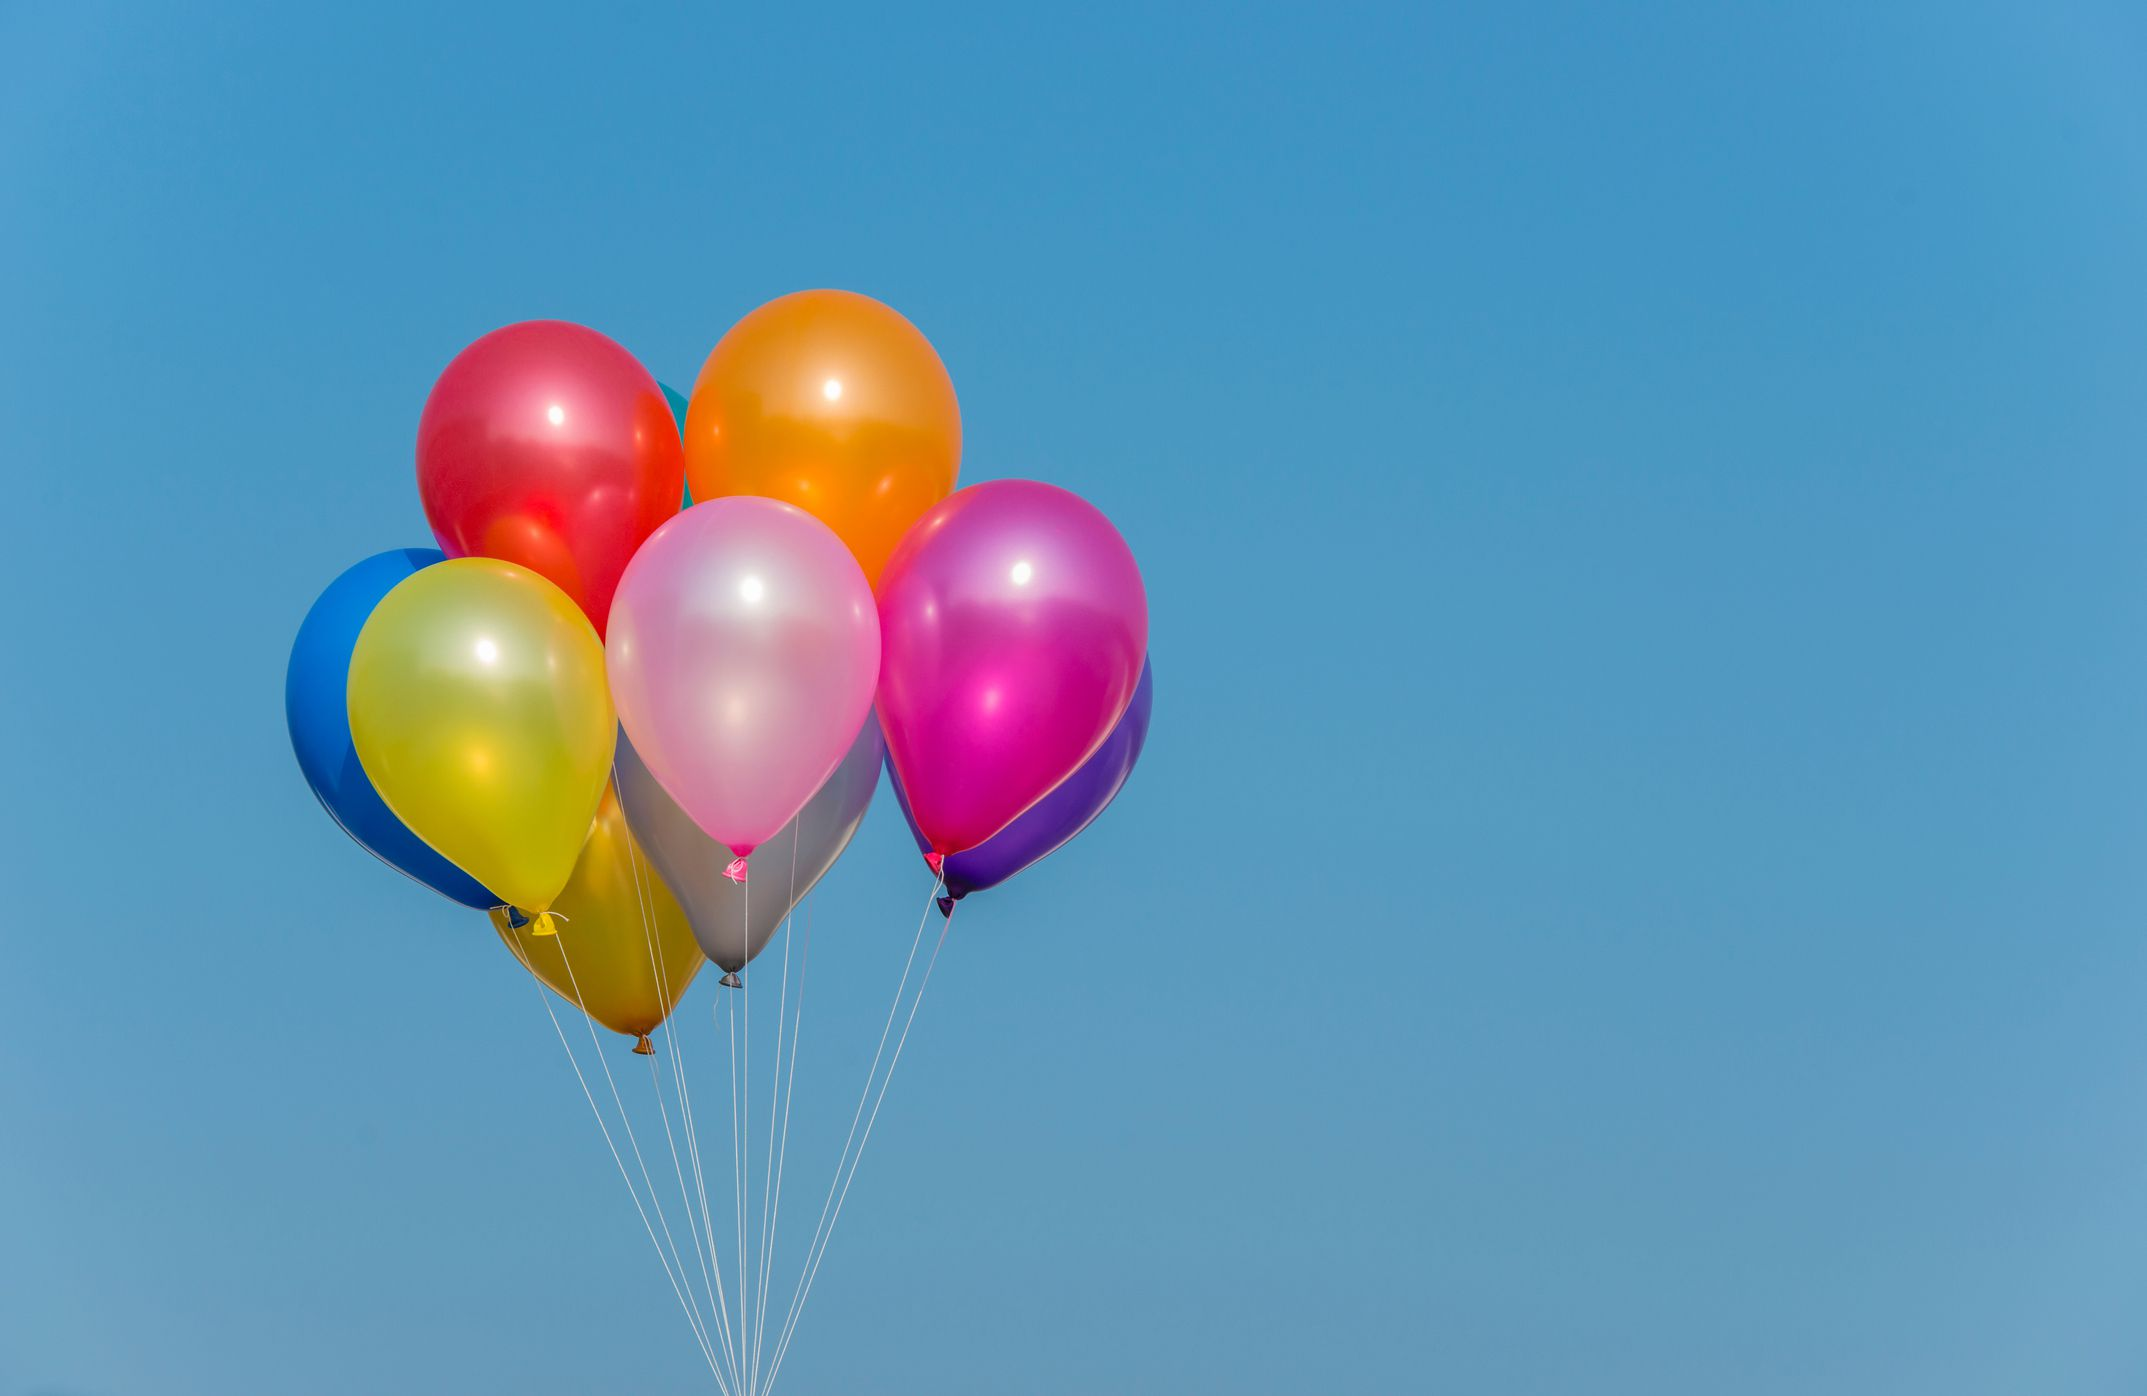 colorful helium balloons against the sky